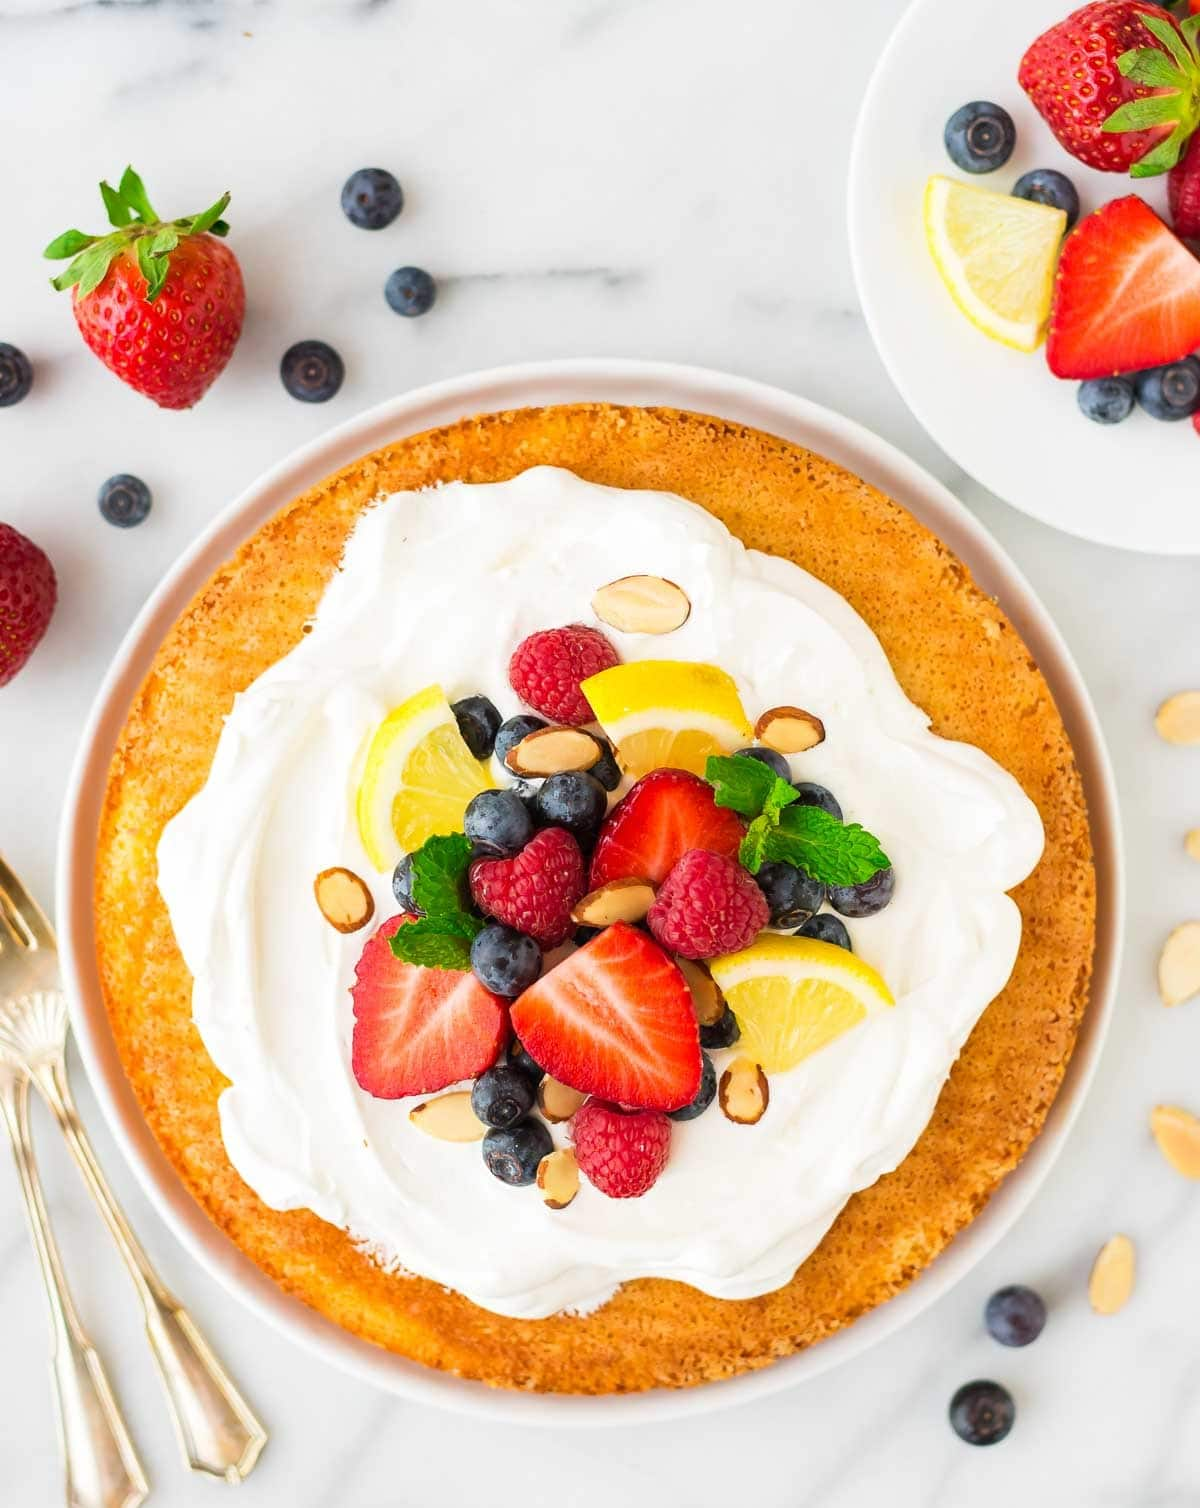 Flourless Almond Cake with Lemon and fresh berries – light, fluffy gluten free dessert made with almond flour, eggs, and sugar. Easy to make and perfect for holidays and parties. Recipe at wellplated.com | @wellplated